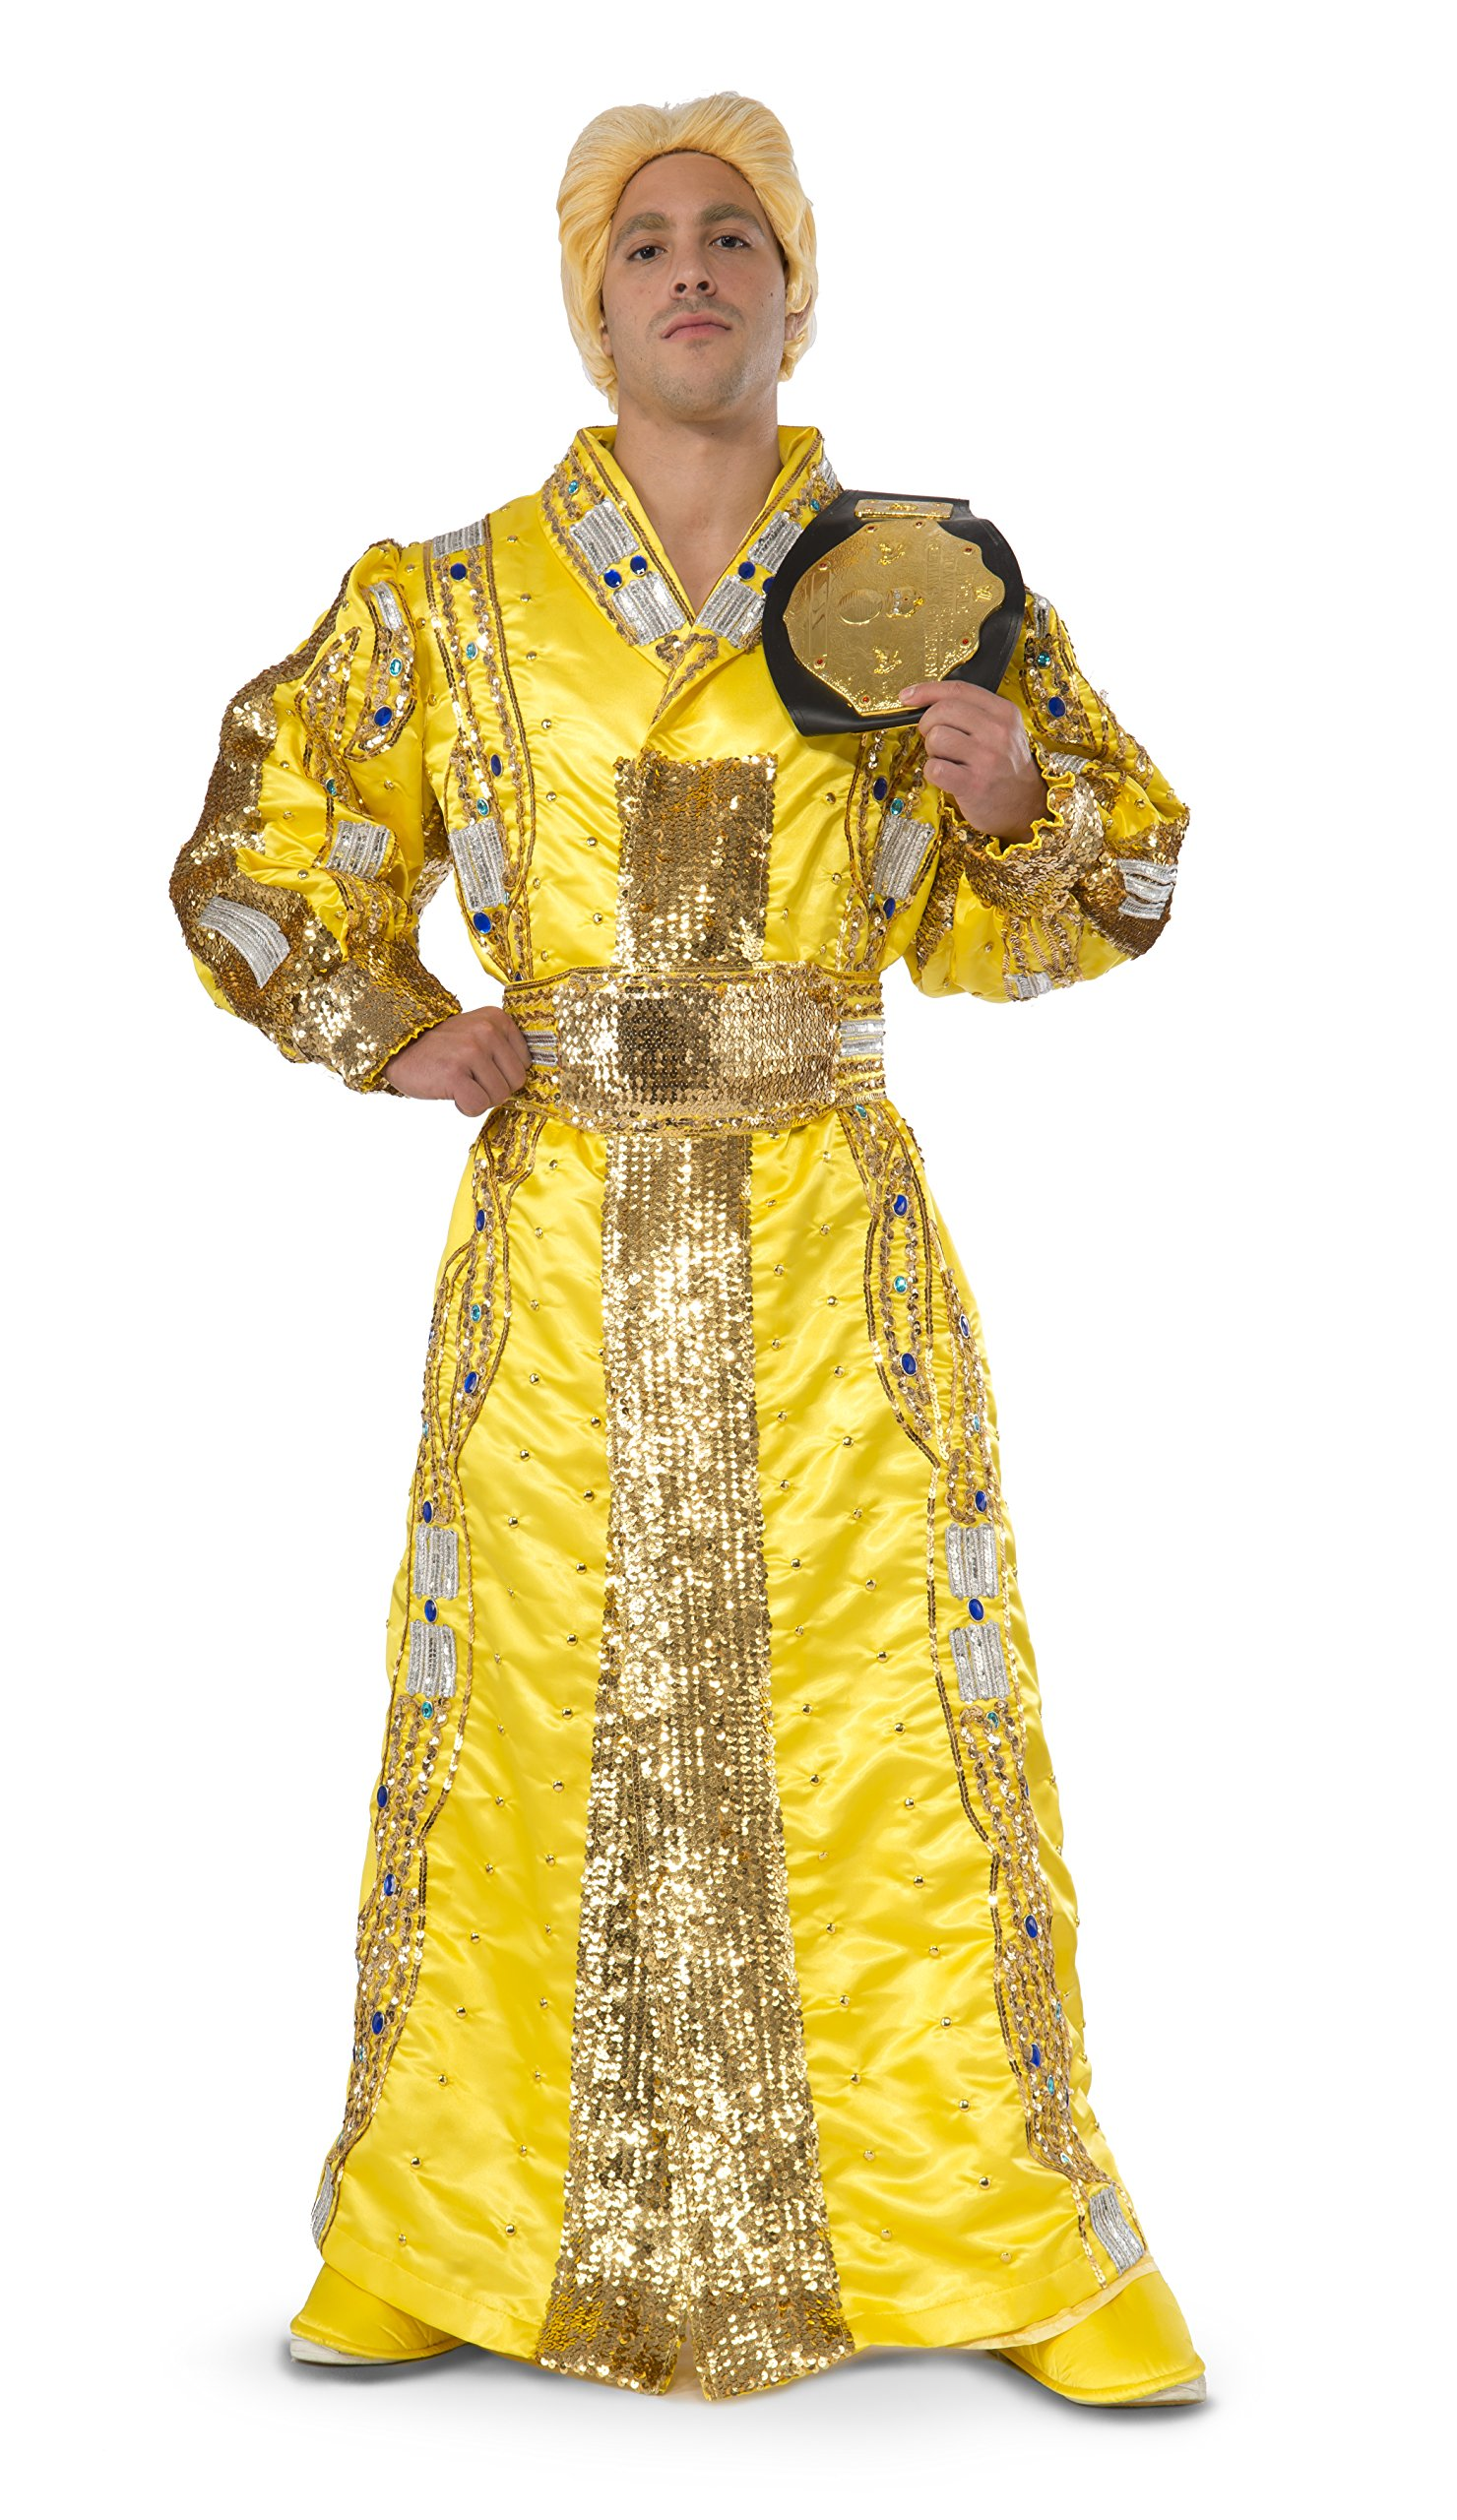 Rubie's Costume Co Men's WWE Ric Flair Grand Heritage Costume, Multi, Large by Rubie's